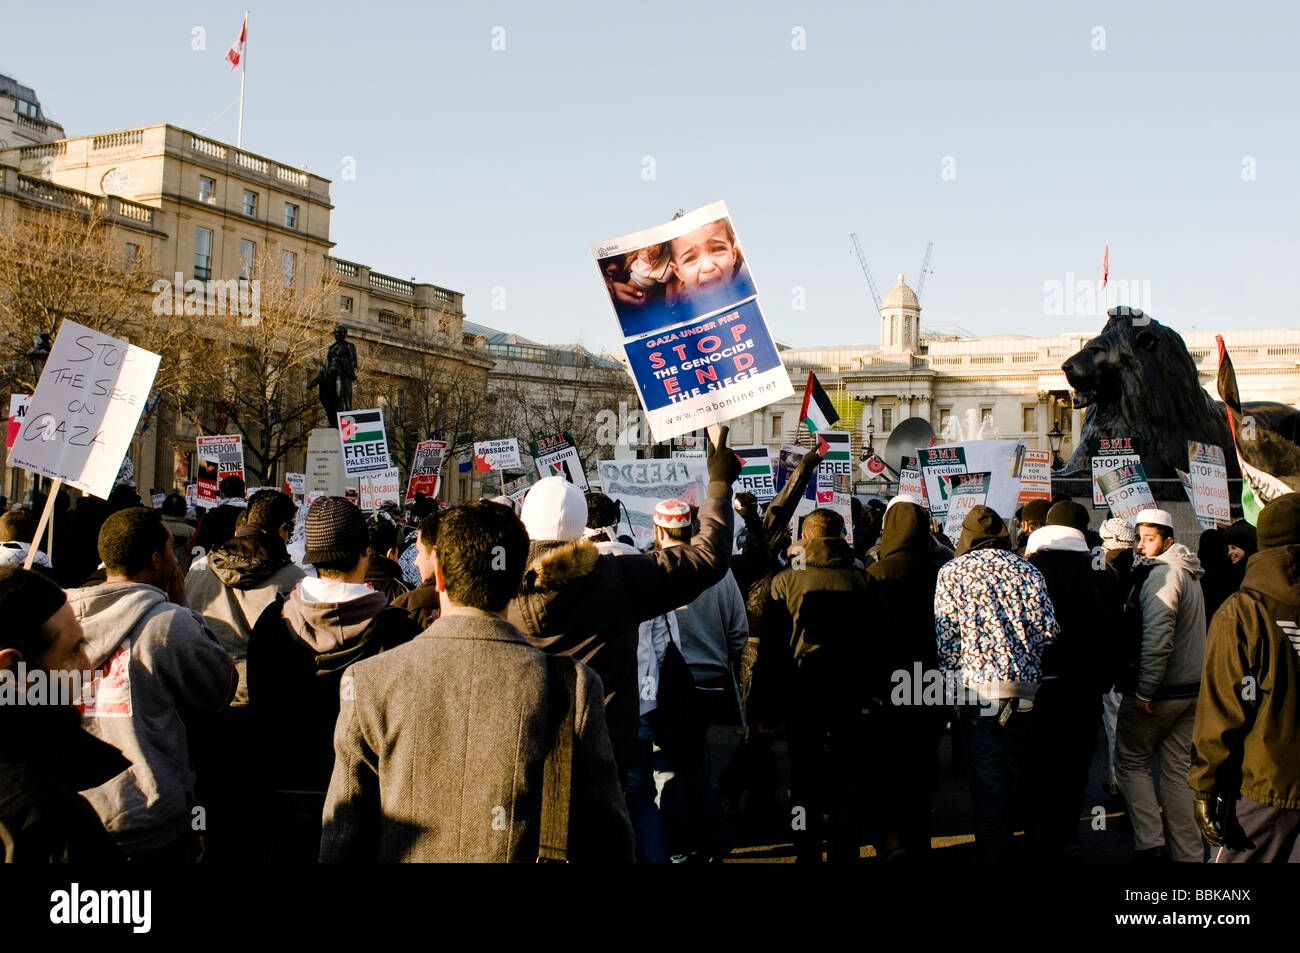 Demonstration anti Israel in London January 2009 Pro Palestinian manifest against the Israeli occupation of Palestine - Stock Image